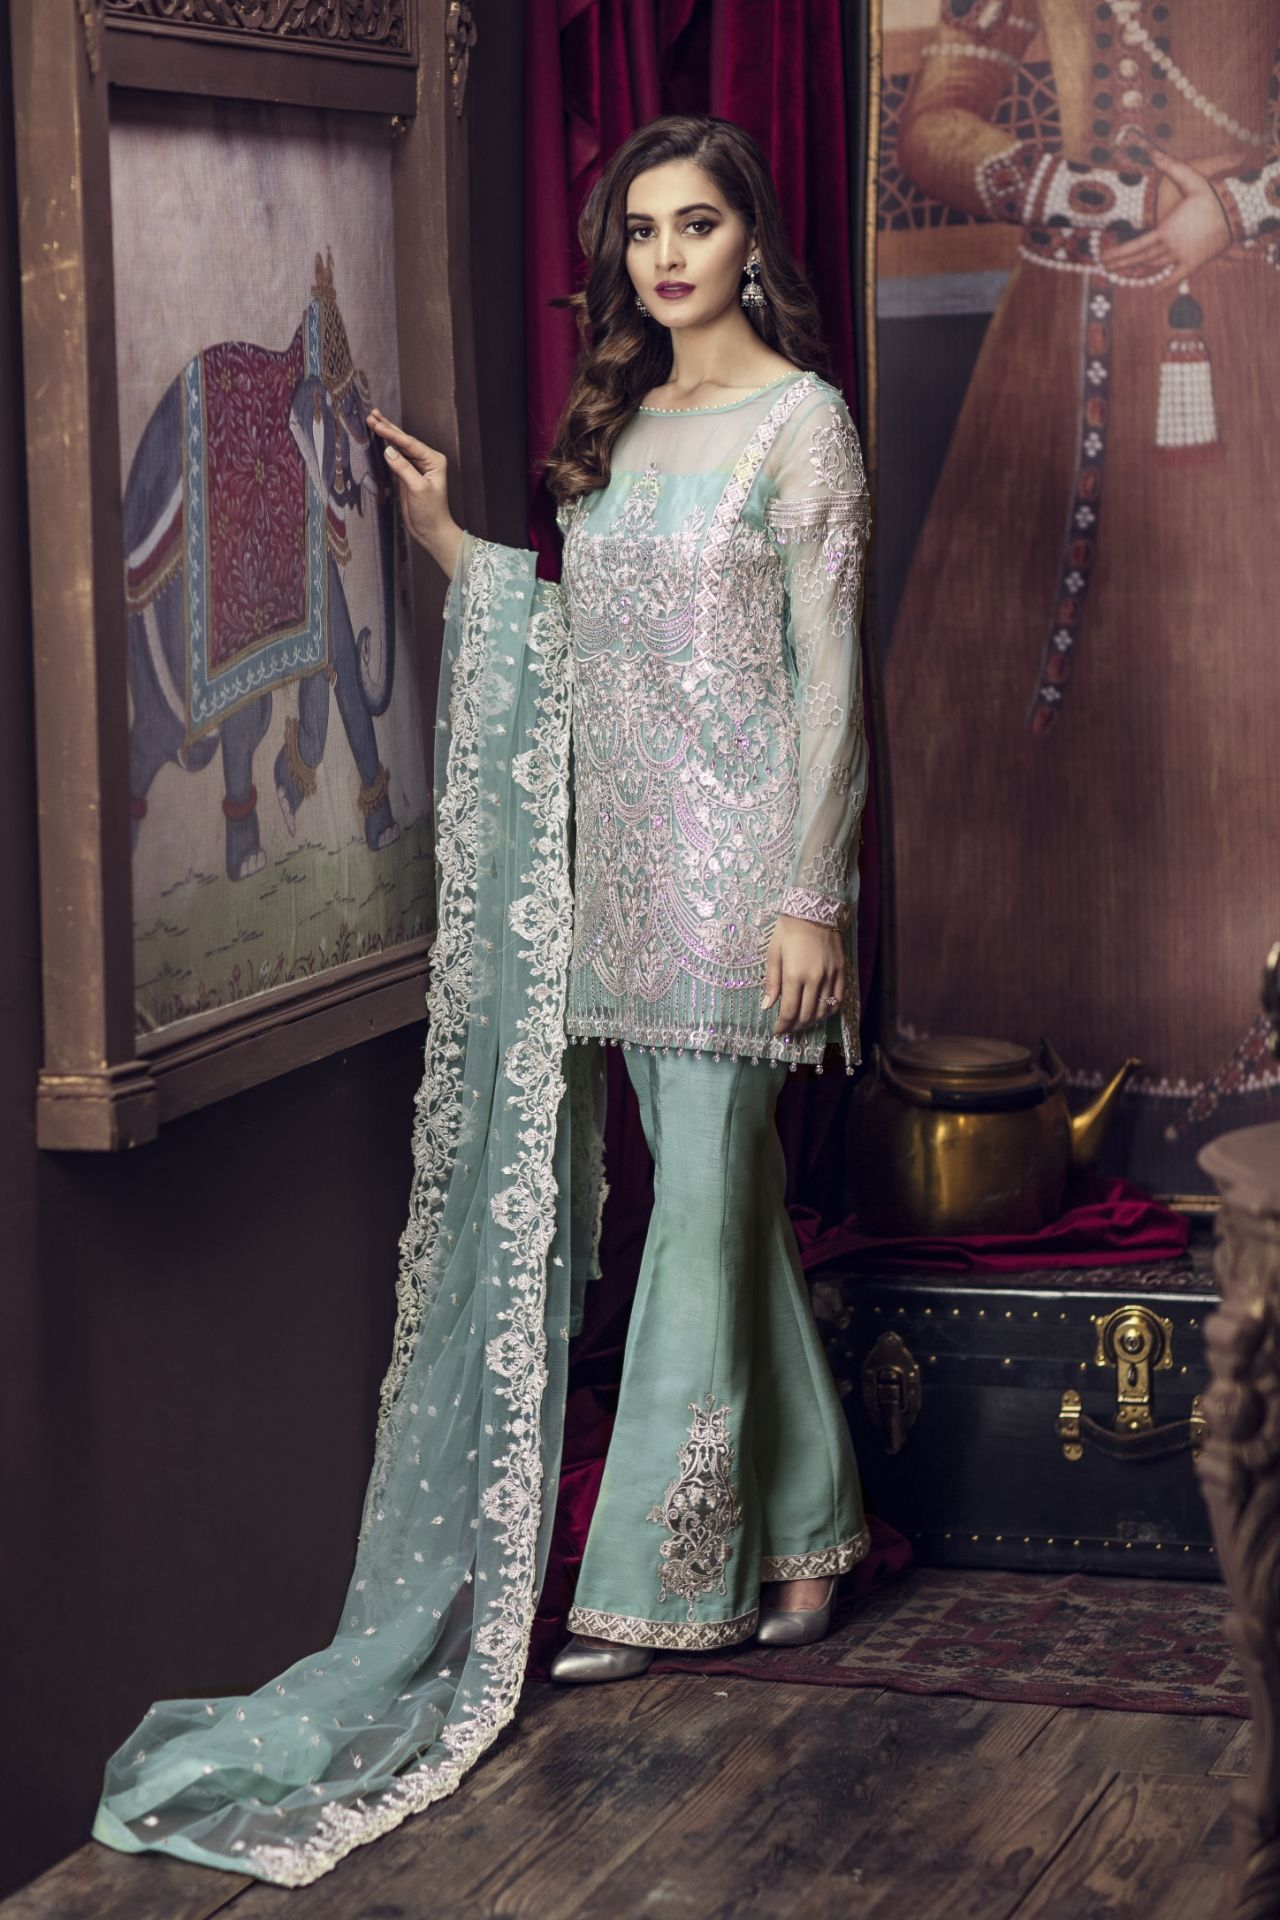 70598b245f Imrozia Premium Embroidered Chiffon Collection 2018 | PK Vogue #partywear  #party #partyideas #partydress #chiffon #pakistanidresses